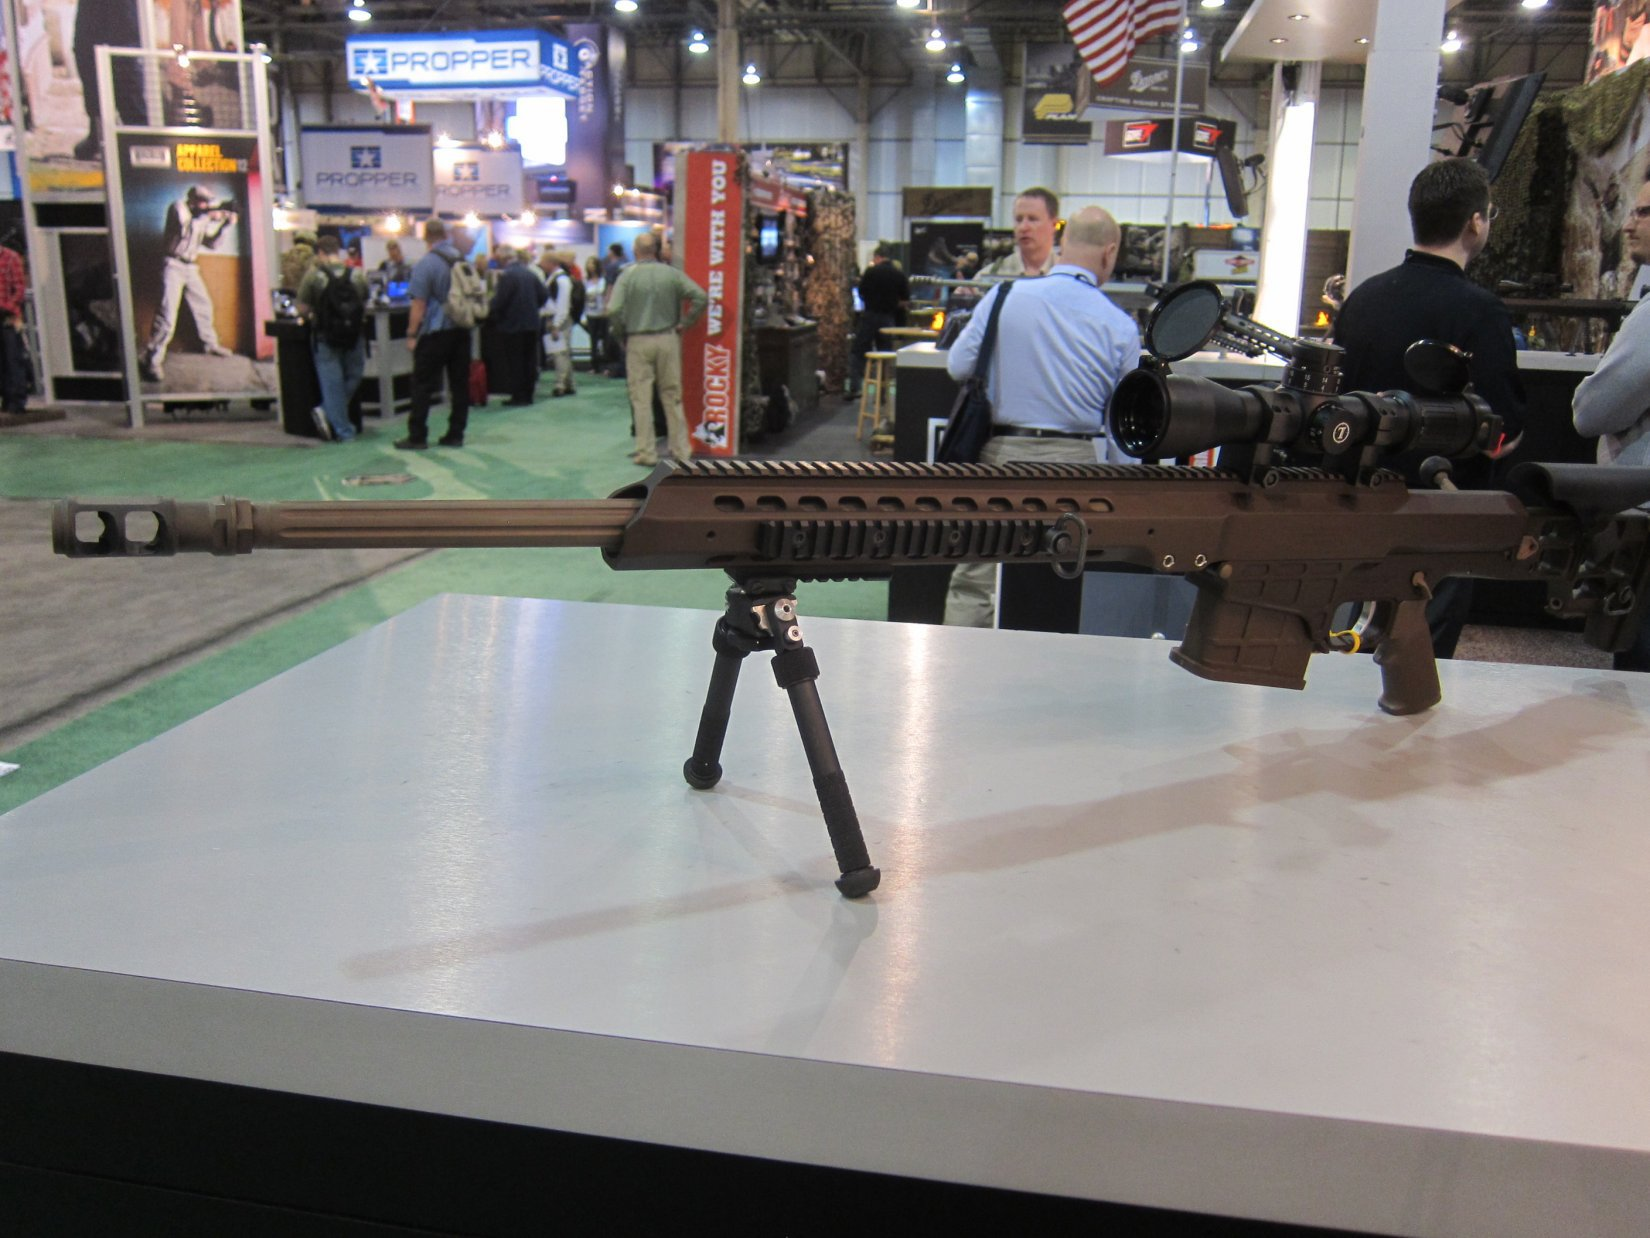 Barrett MRAD Multi Role Adaptive Design Multi Caliber .338 Lapua Magnum Rifle SHOT Show 2012 DefenseReview.com DR 3 Barrett MRAD (Multi Role Adaptive Design) Multi Caliber .338 Lapua Magnum Bolt Action Anti Materiel/Sniper Rifle and G4tv Attack of the Show Crew at SHOT Show 2012 (Video!)